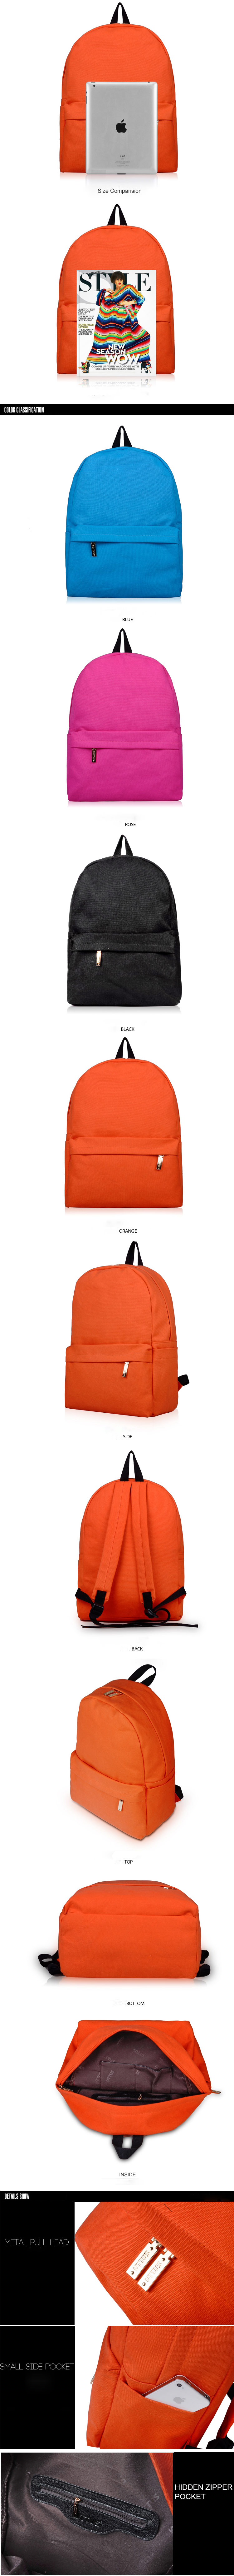 Chic Canvas Zipper-up Womens Traveling Backpack with Side Pocket